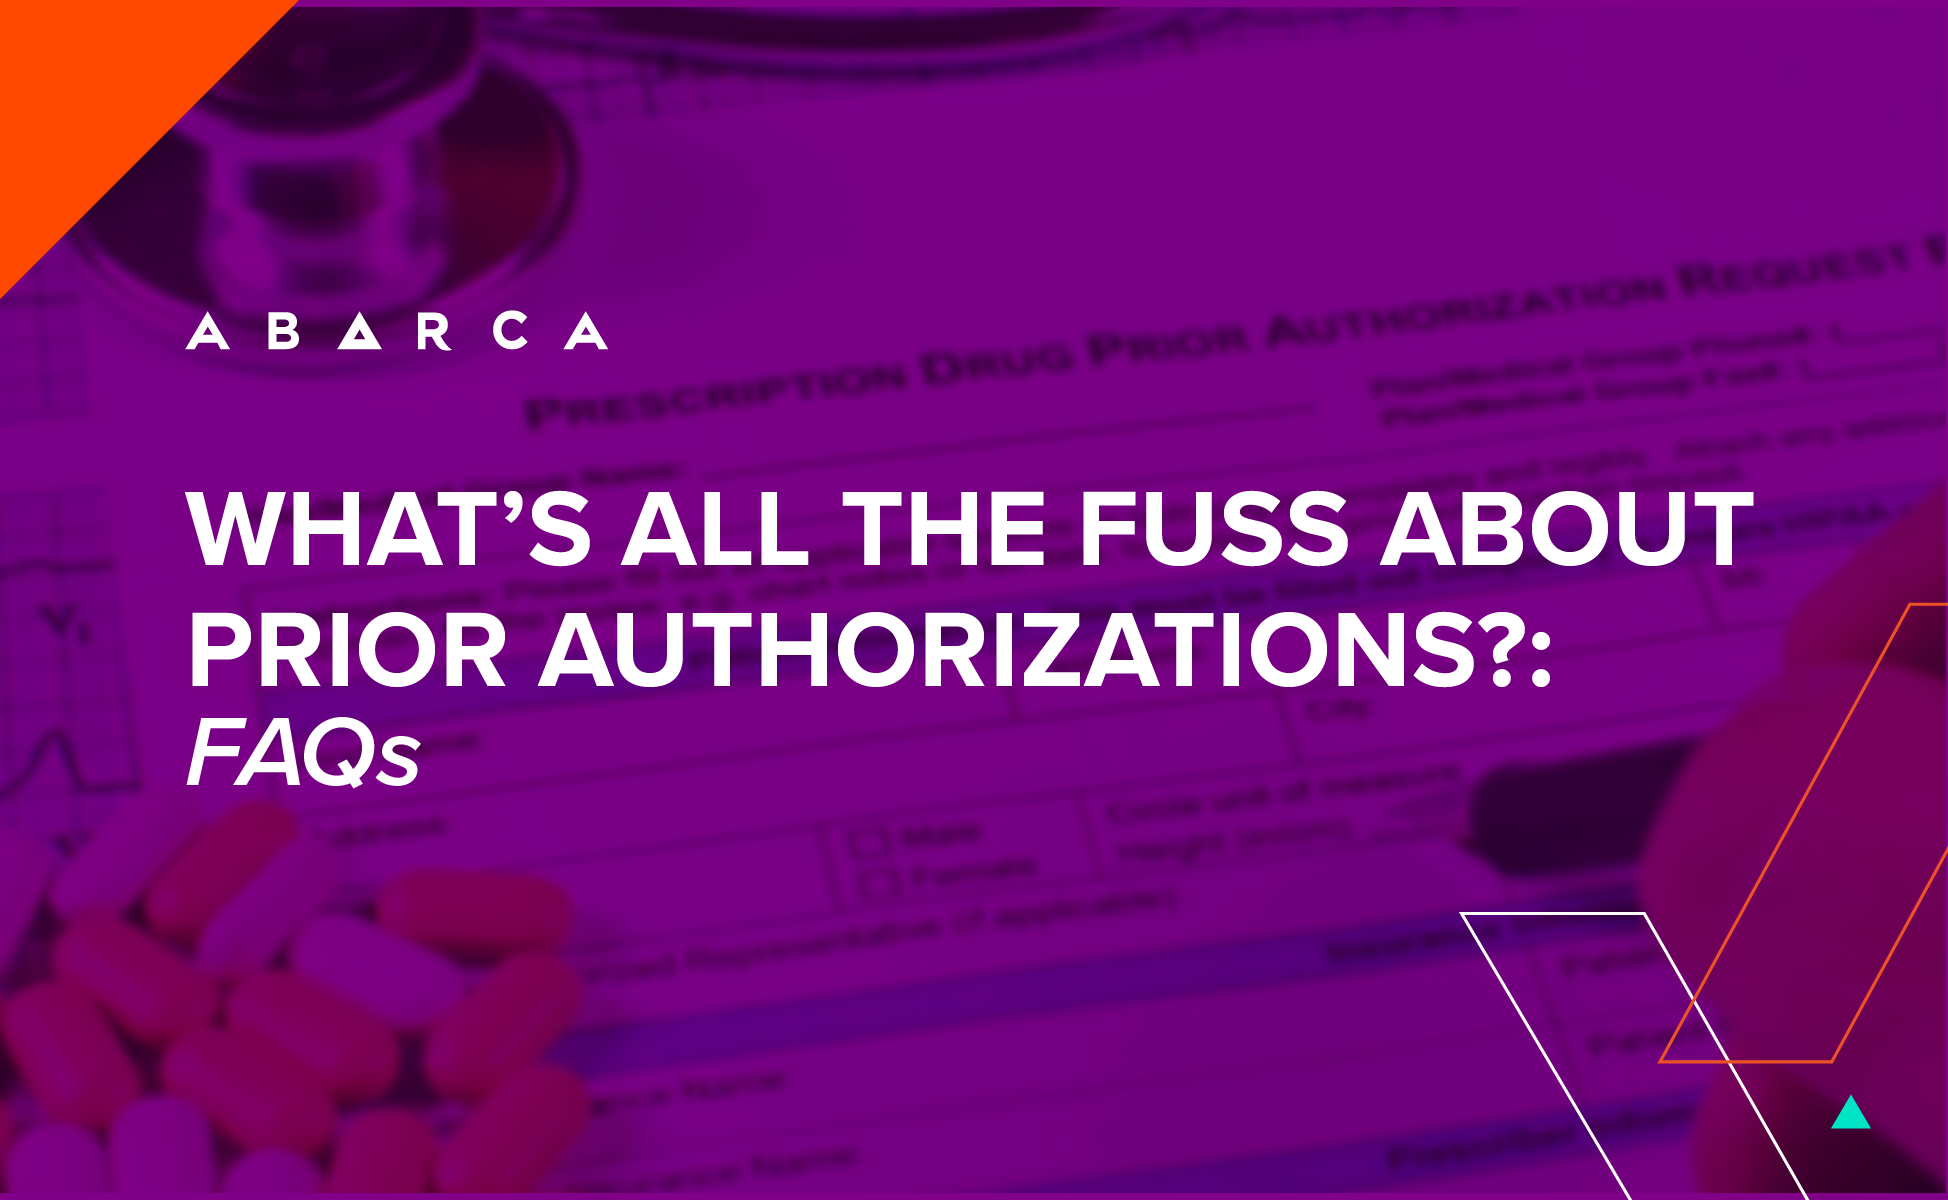 What's all the fuss about prior authorizations: FAQs